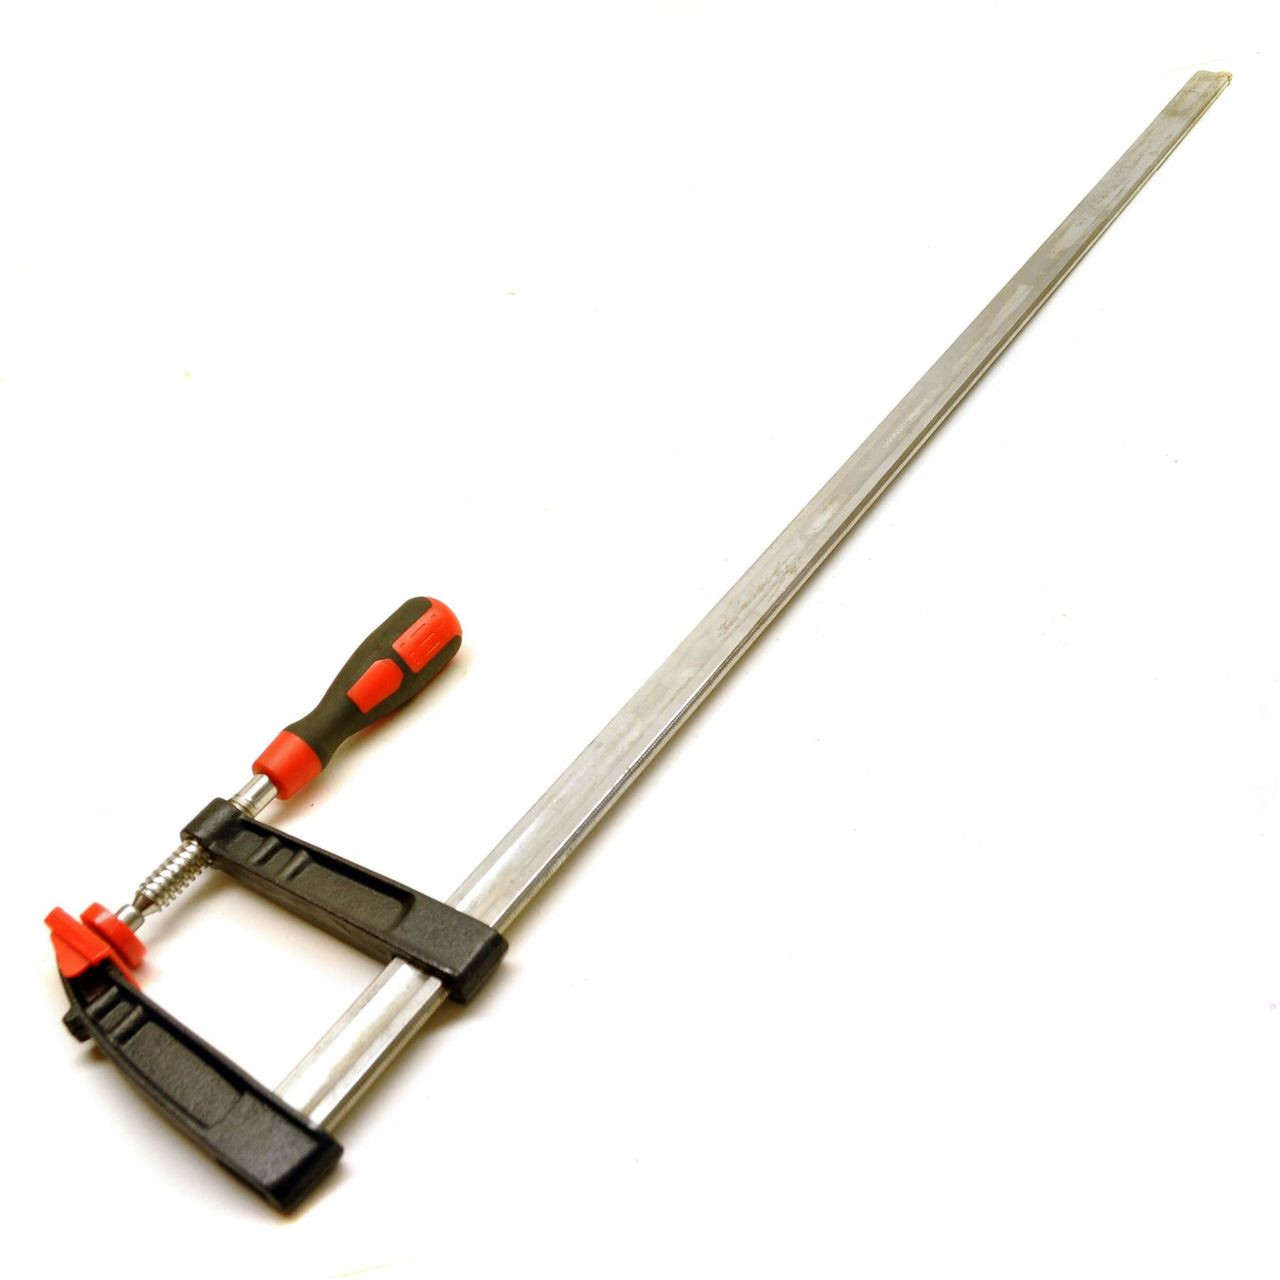 F Clamp / Sliding G Clamp with Soft Grip Handle 1000mm x 120mm TE289